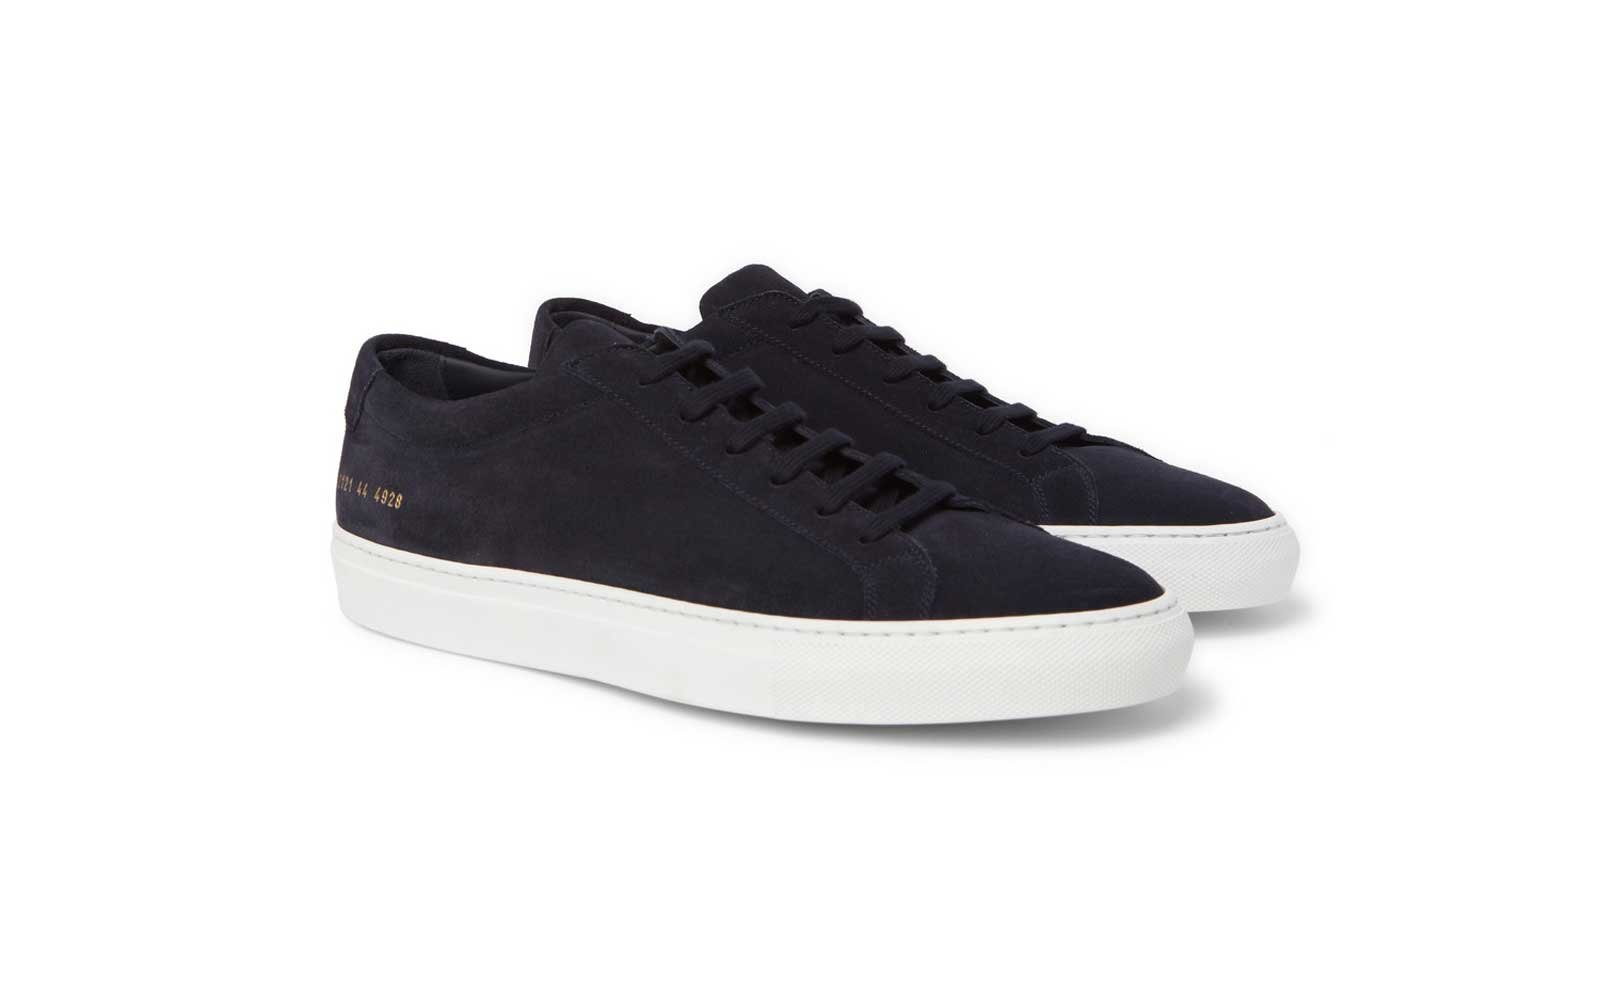 b66aae5adfe1 Common Projects  Original Achilles  Suede Sneakers